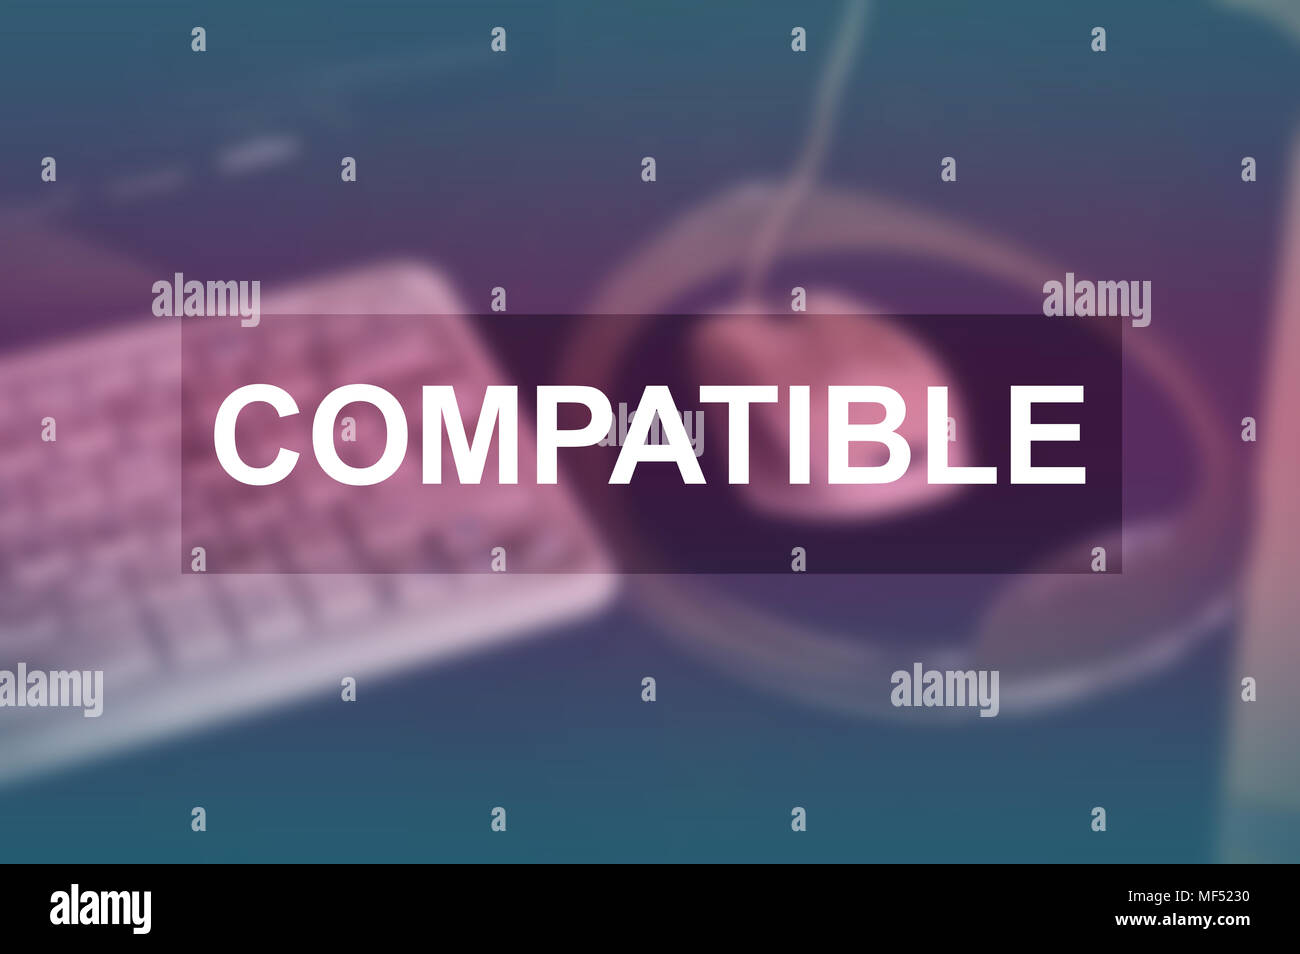 Compatible word with blurring business background - Stock Image